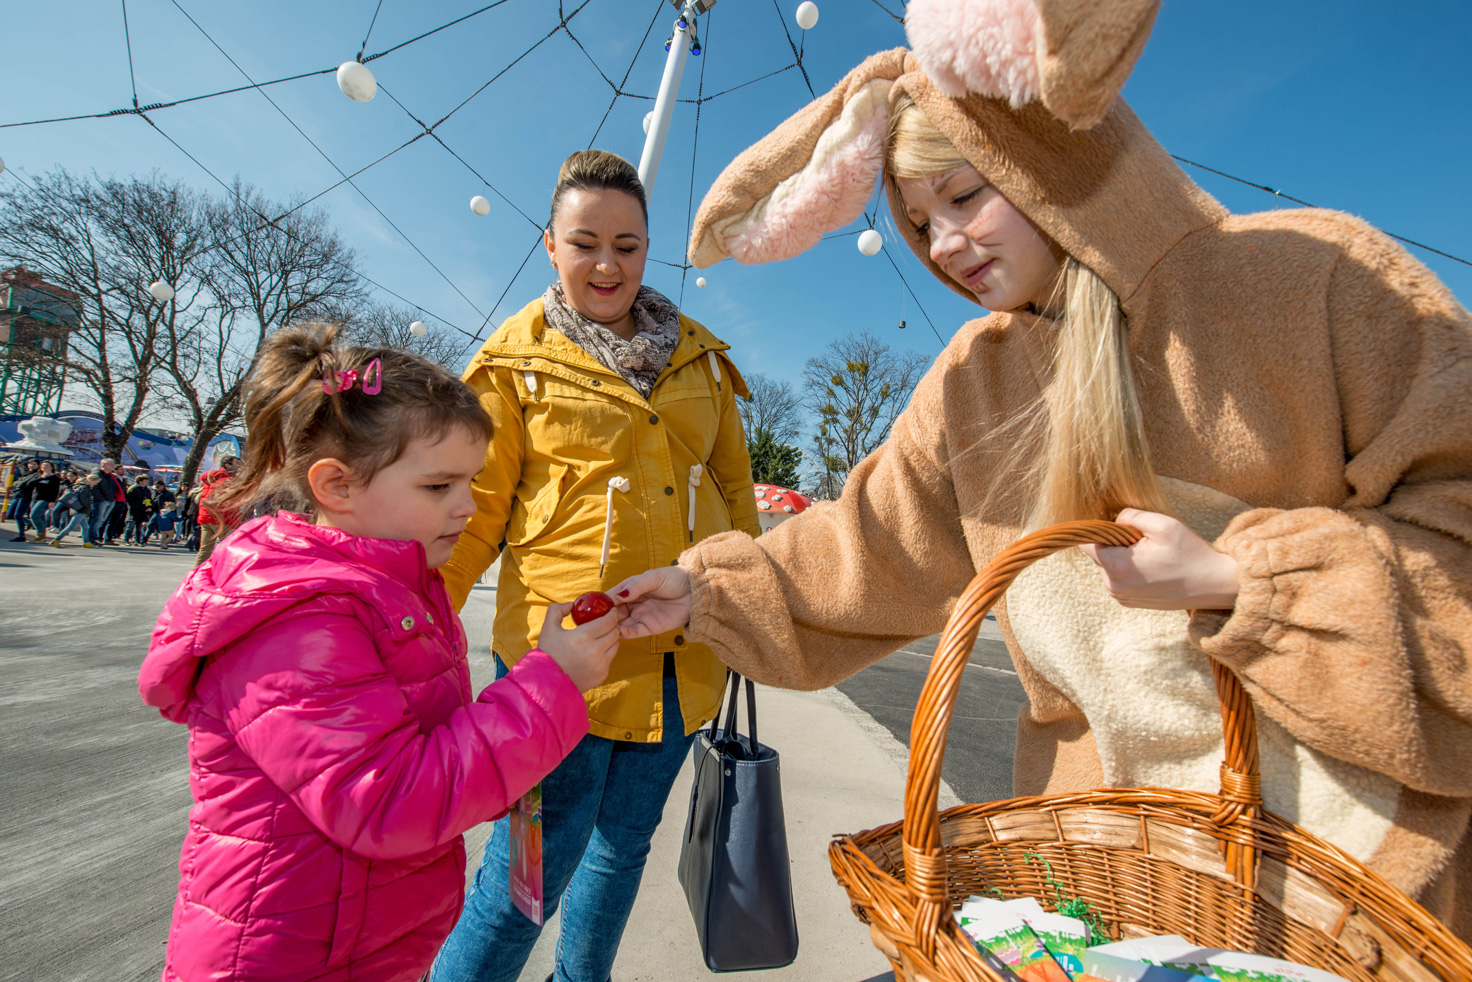 Easter-market-at-Prater-(c)Wolfgang-Payer.jpg